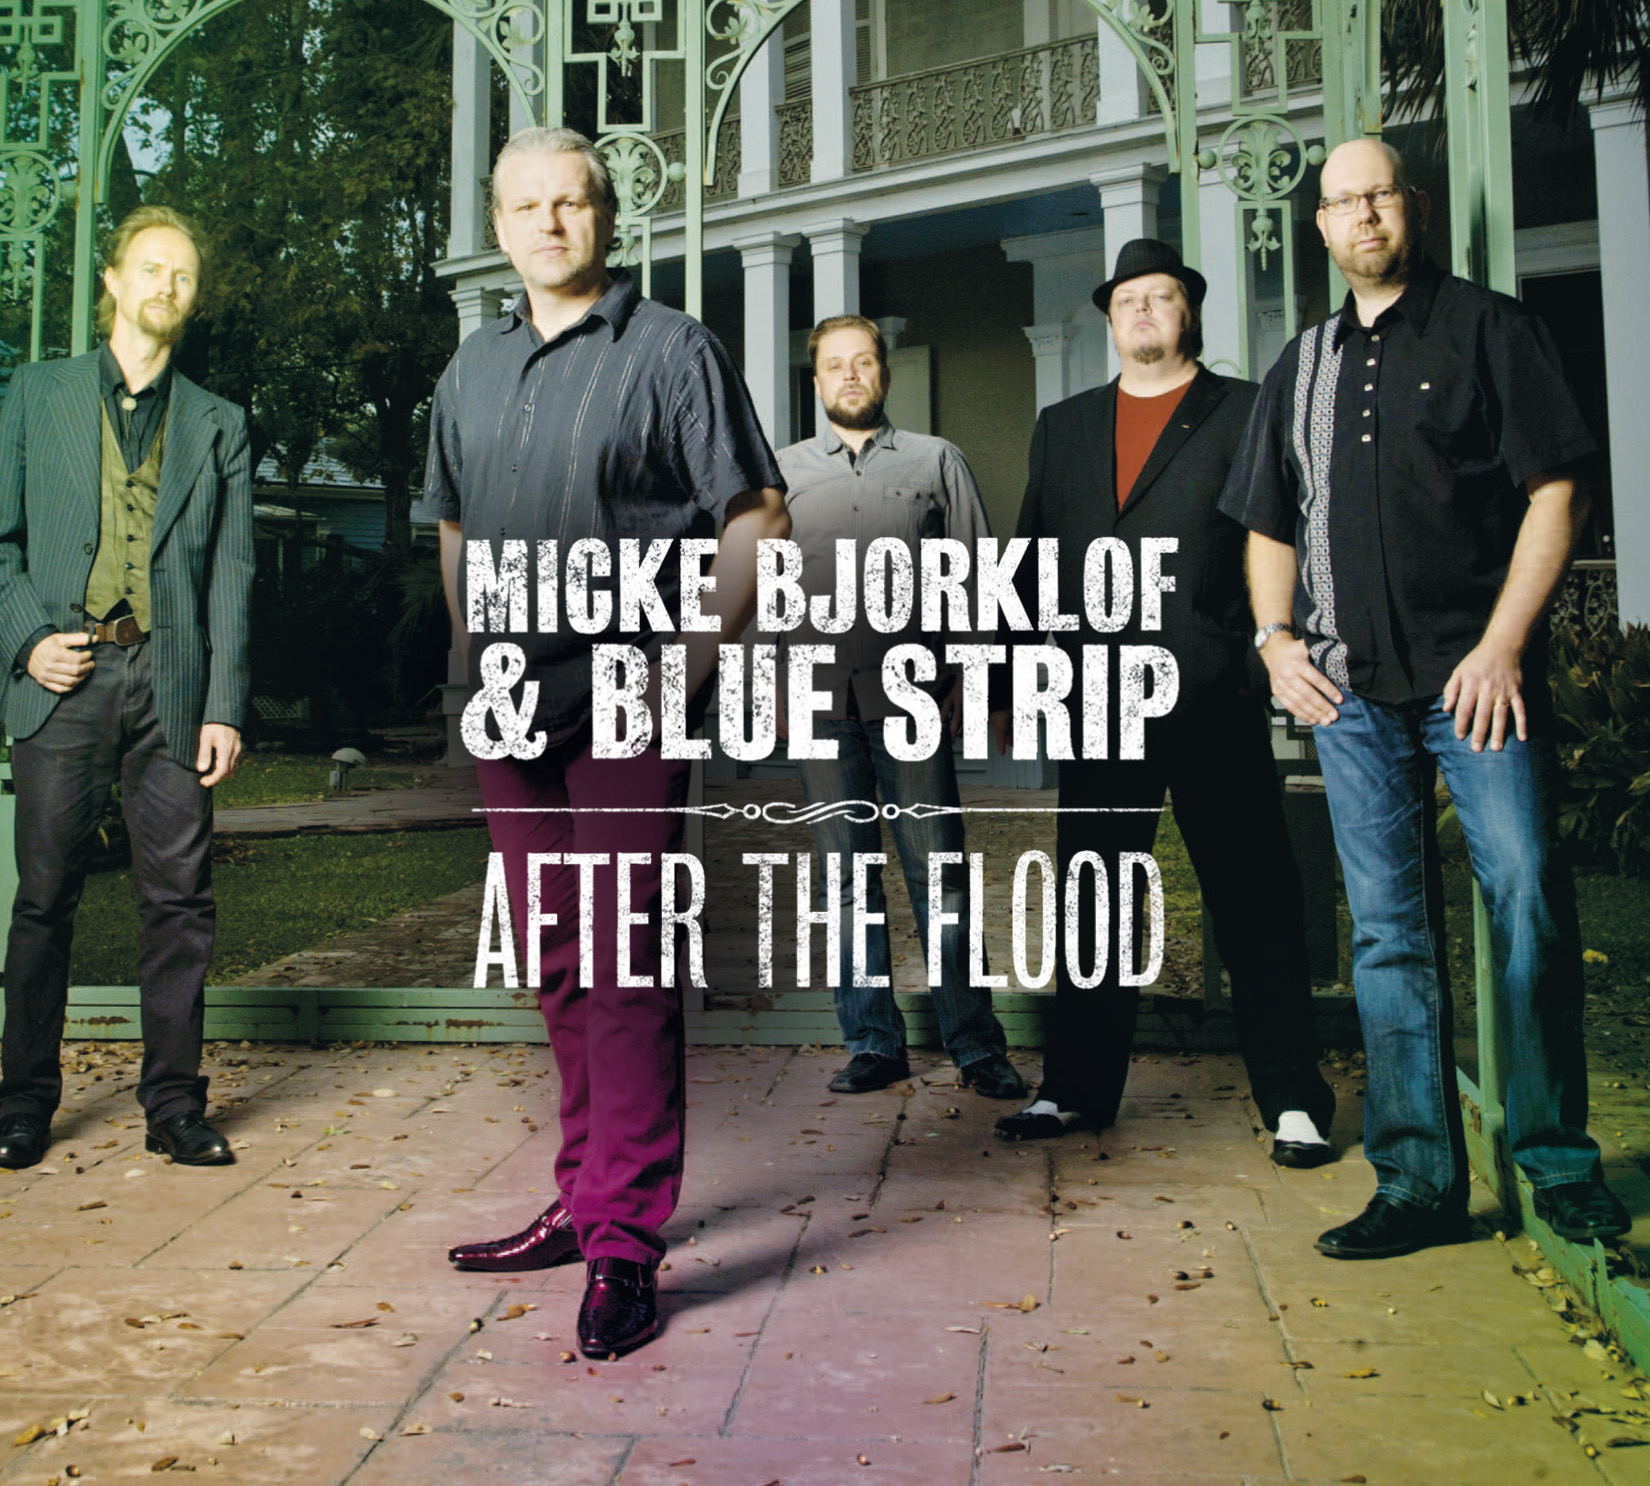 Micke Bjorklof & Blue Strip – After the Flood